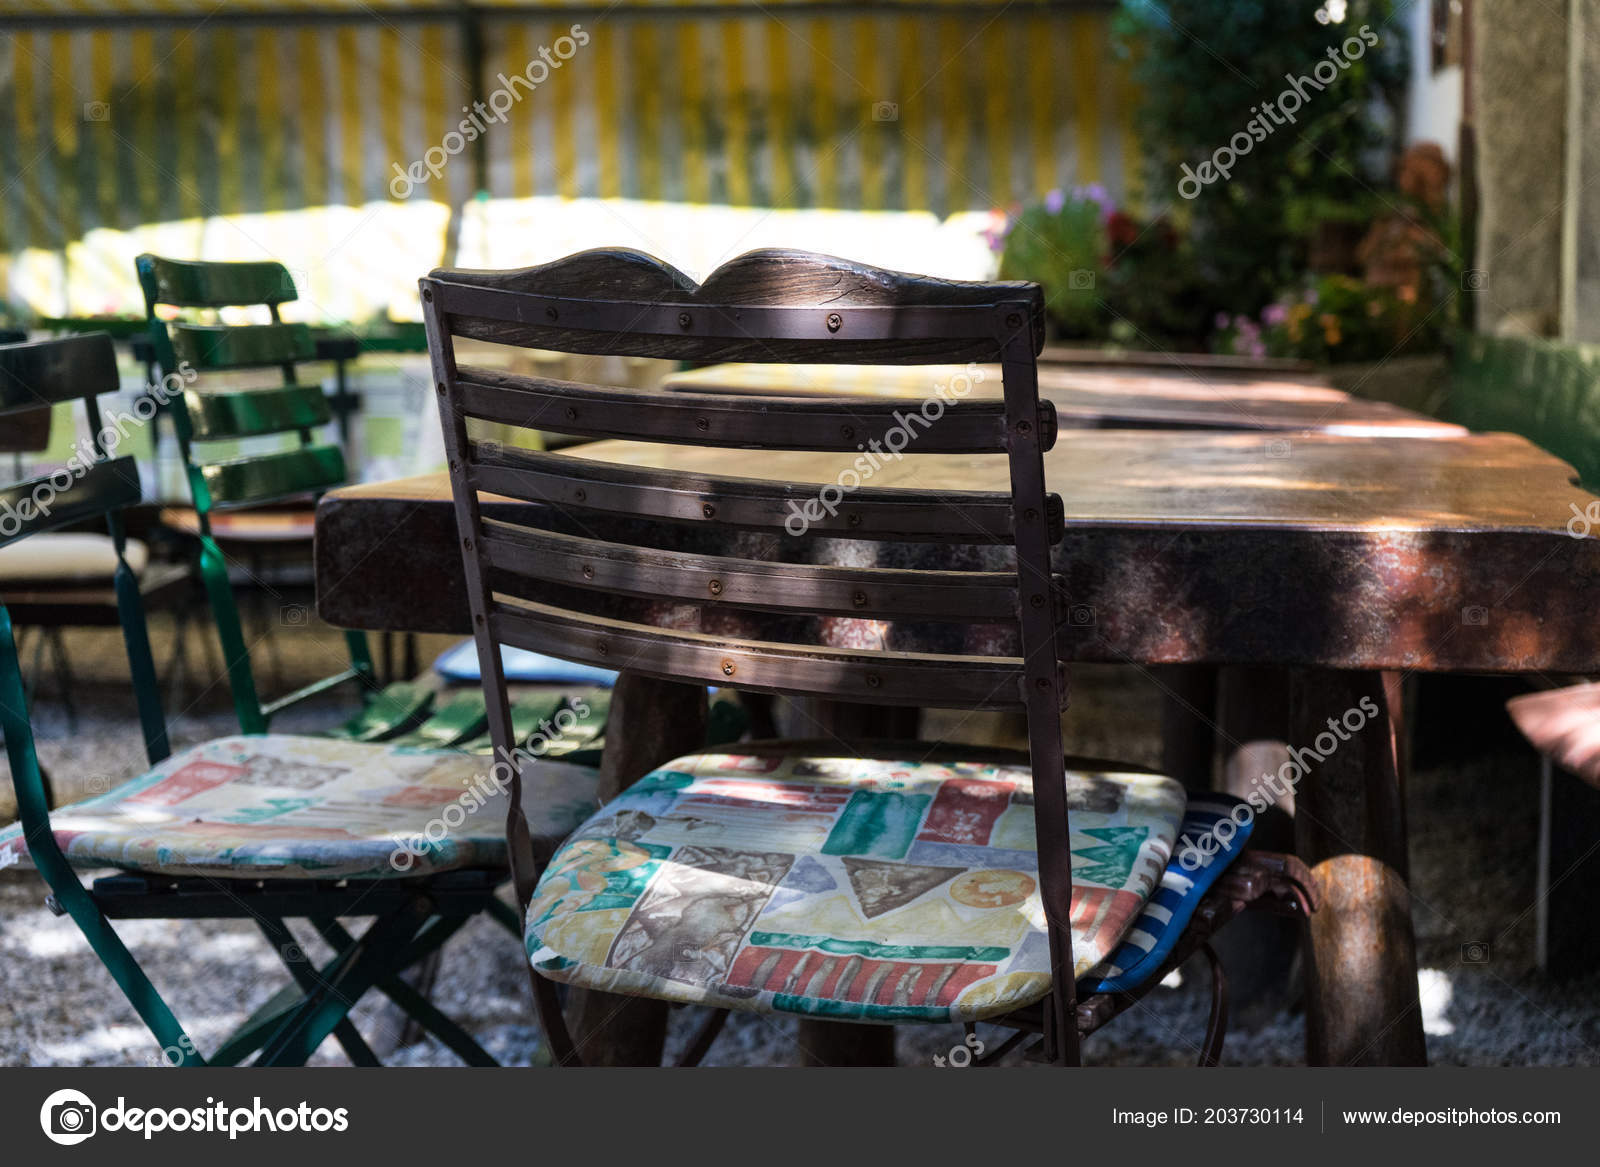 Bar Pour Terrasse Chaise Tables Terrasse Restaurant Café Bar Confortable Place Pour